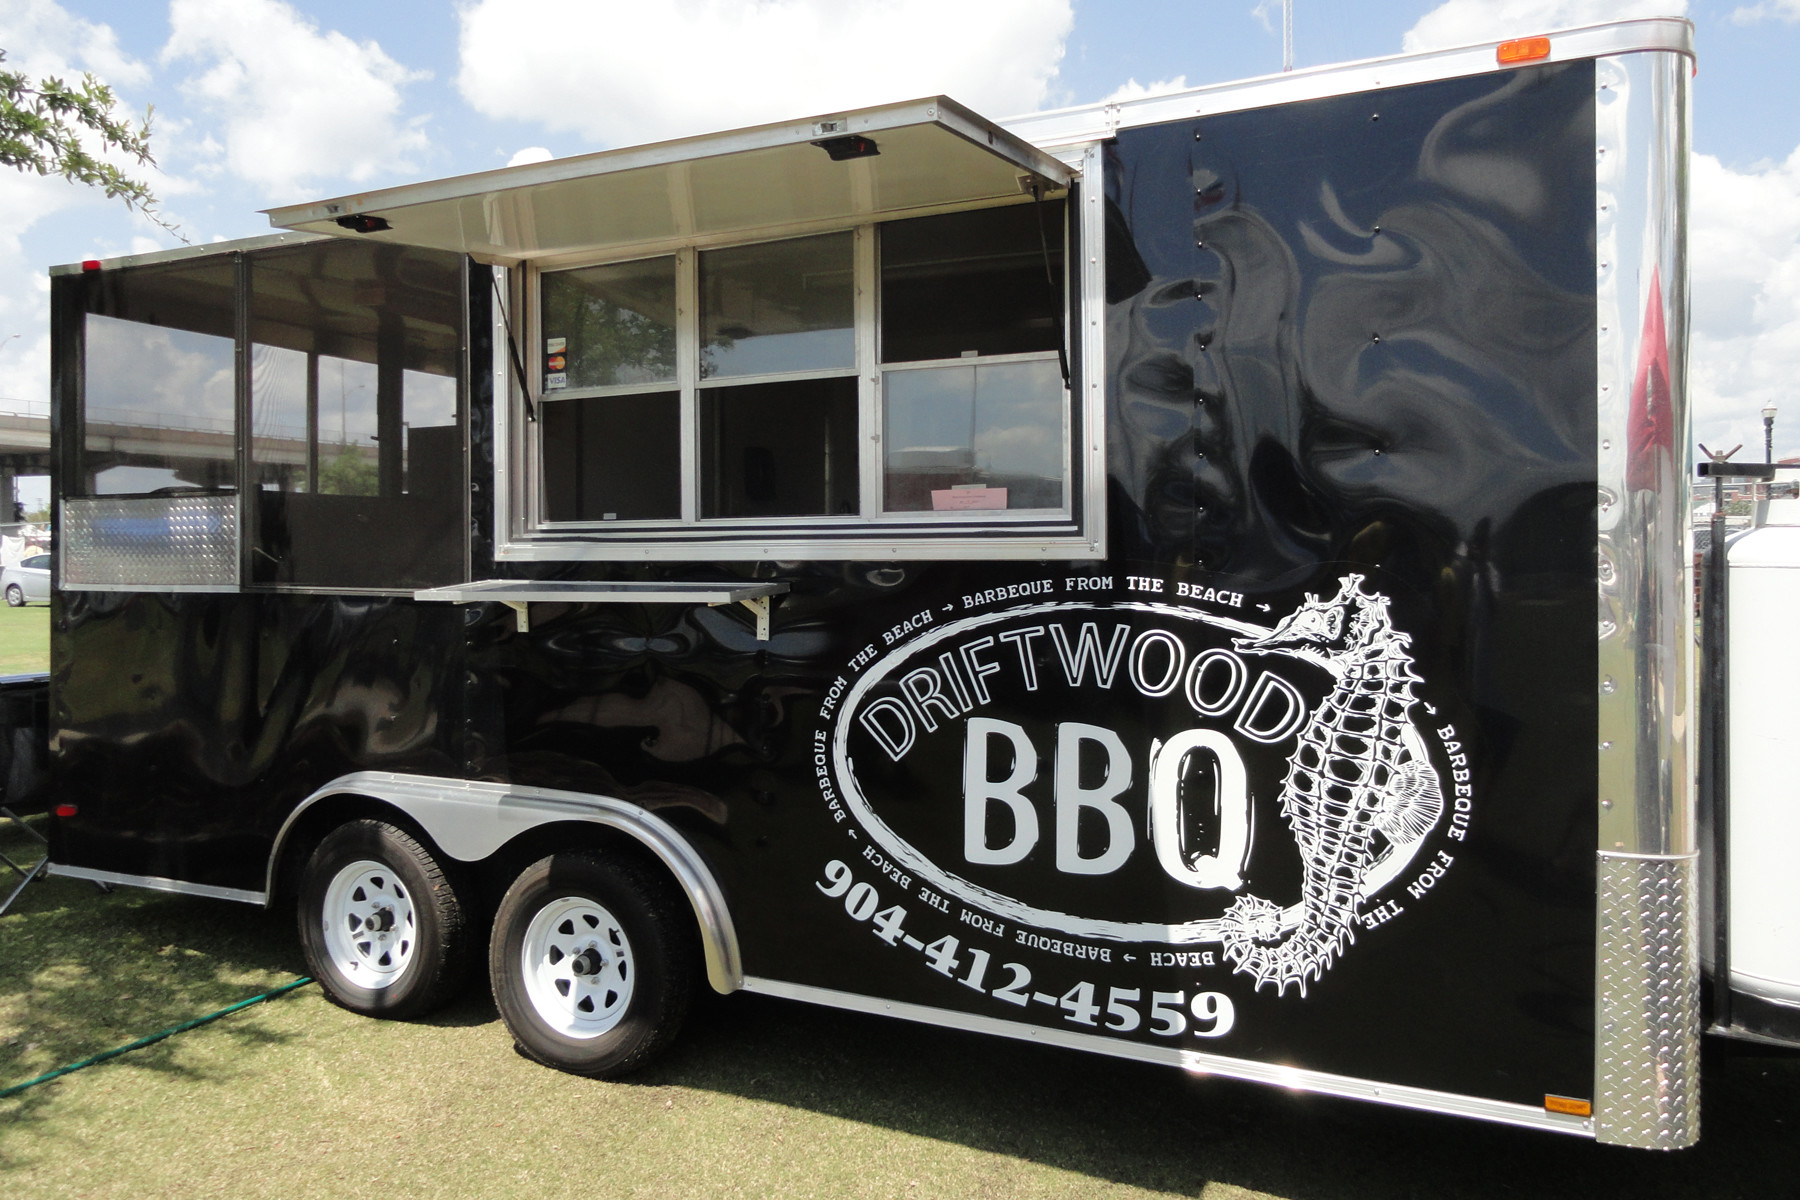 Driftwood BBQ serves a wide variety of BBQ favorites and side items — smoked ribs, pulled pork, brisket, baked beans, slaw, and occasionally the most delicious homemade banana pudding.